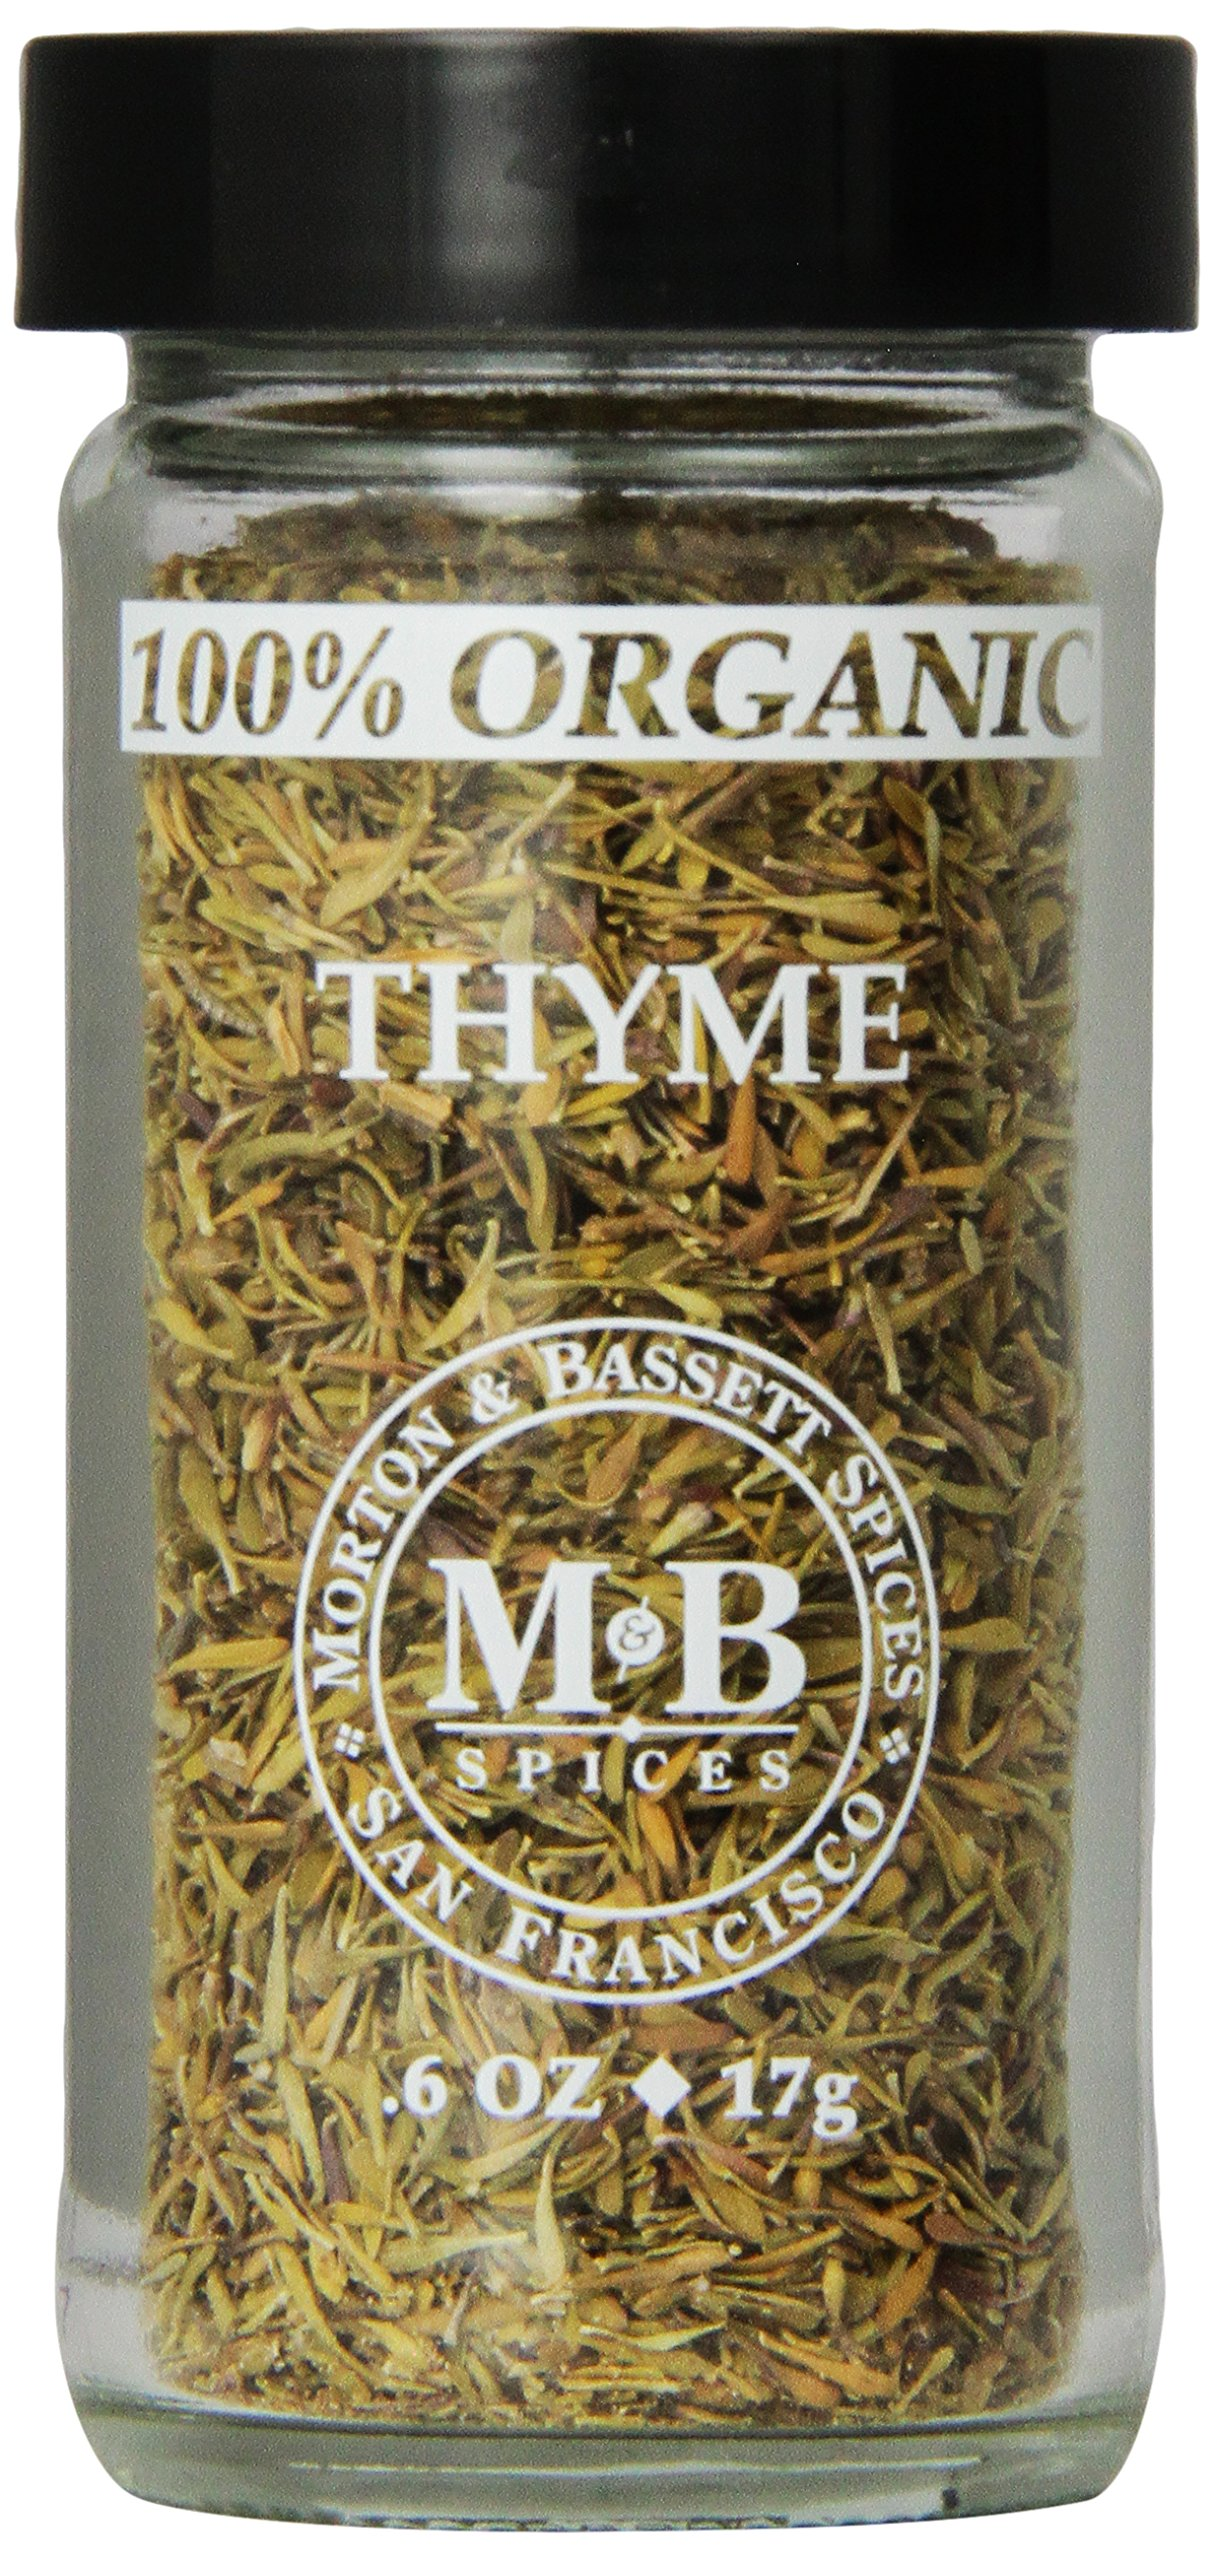 Morton & Basset Spices, Organic Thyme, 0.6 Ounce (Pack of 3)